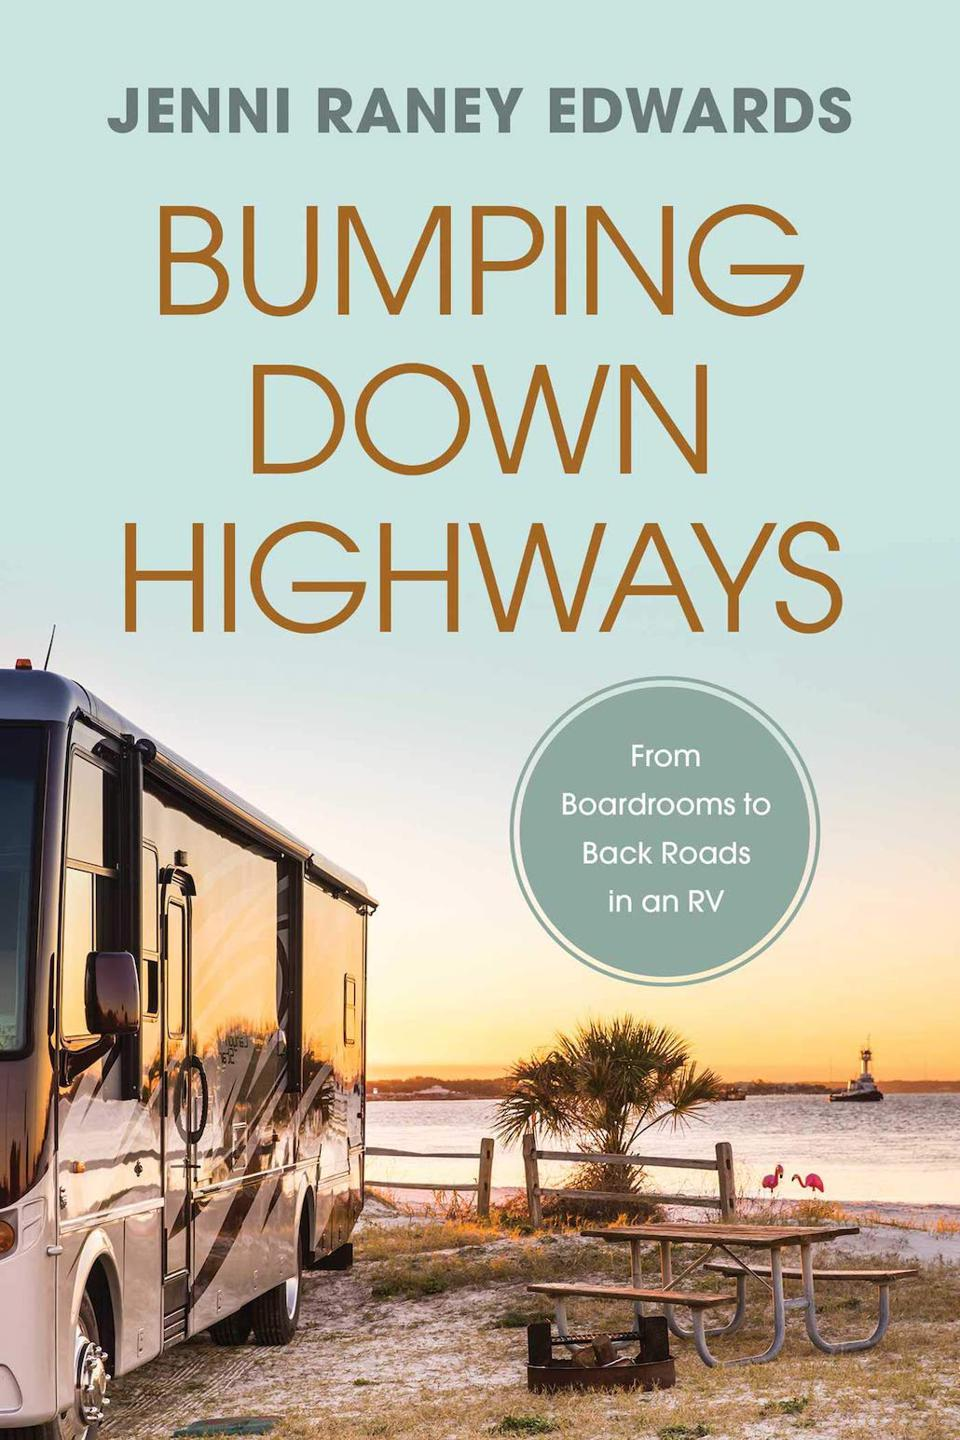 Bumping Down Highways: From Boardrooms to Back Roads in an RV by Jenni Raney Edwards